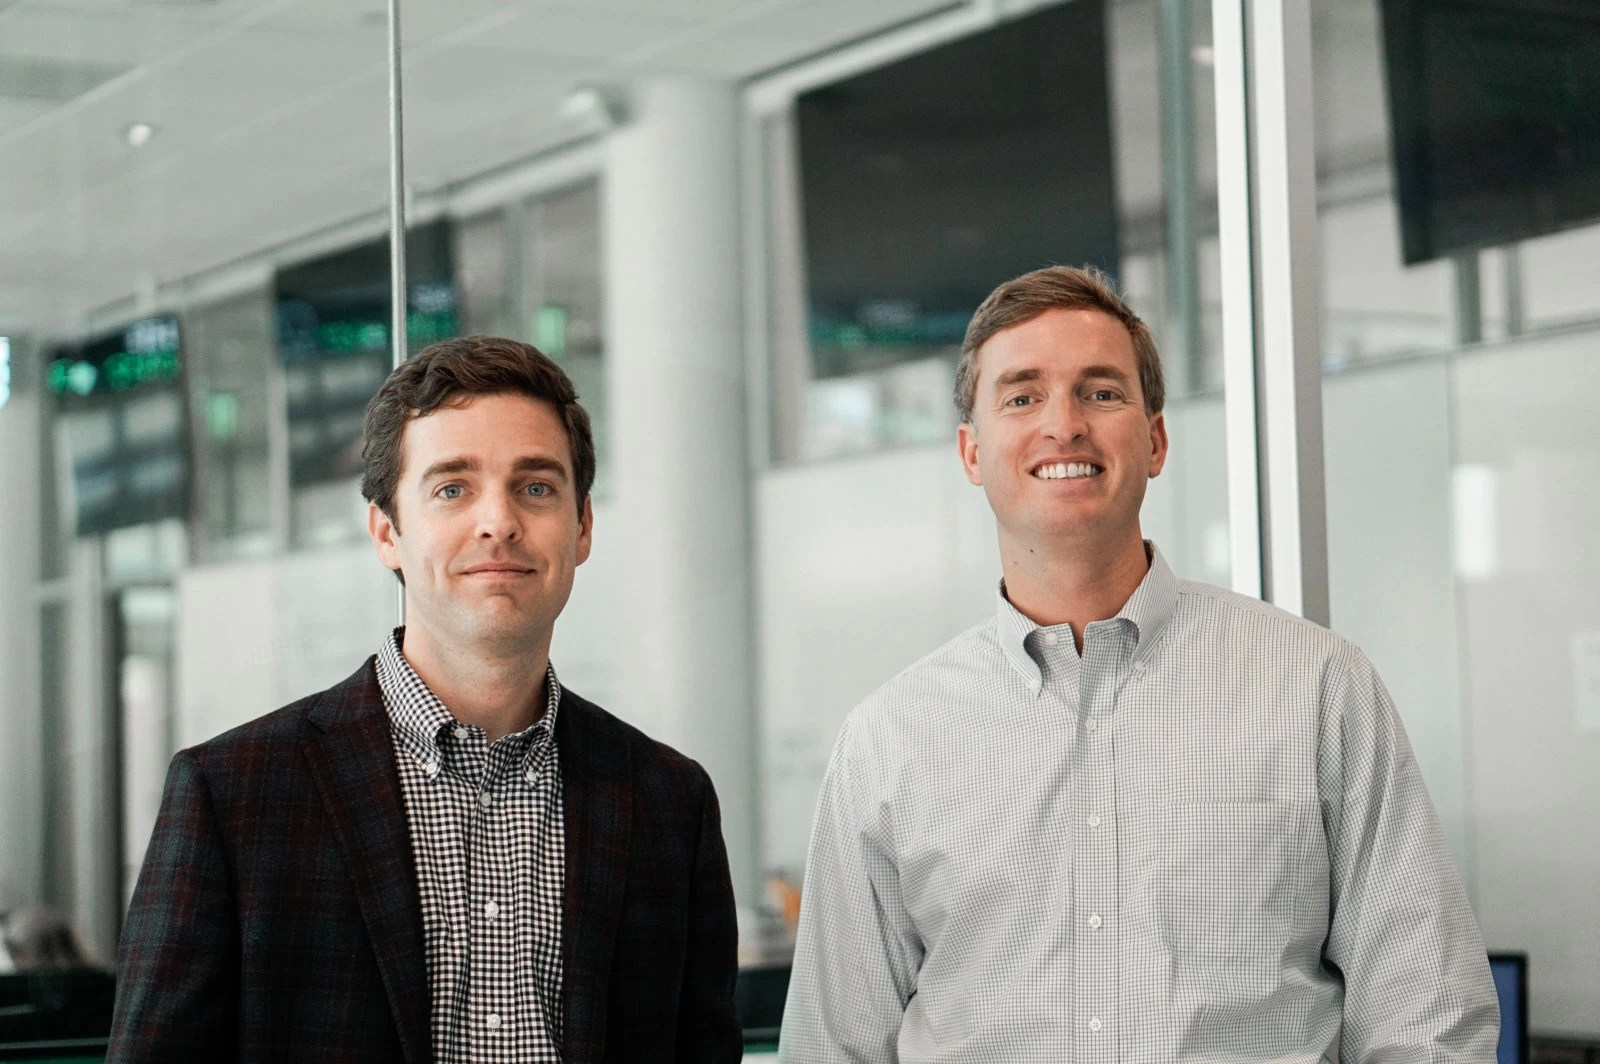 Austin and Thomas Rhodes are the co-founders of Rhodes Branding